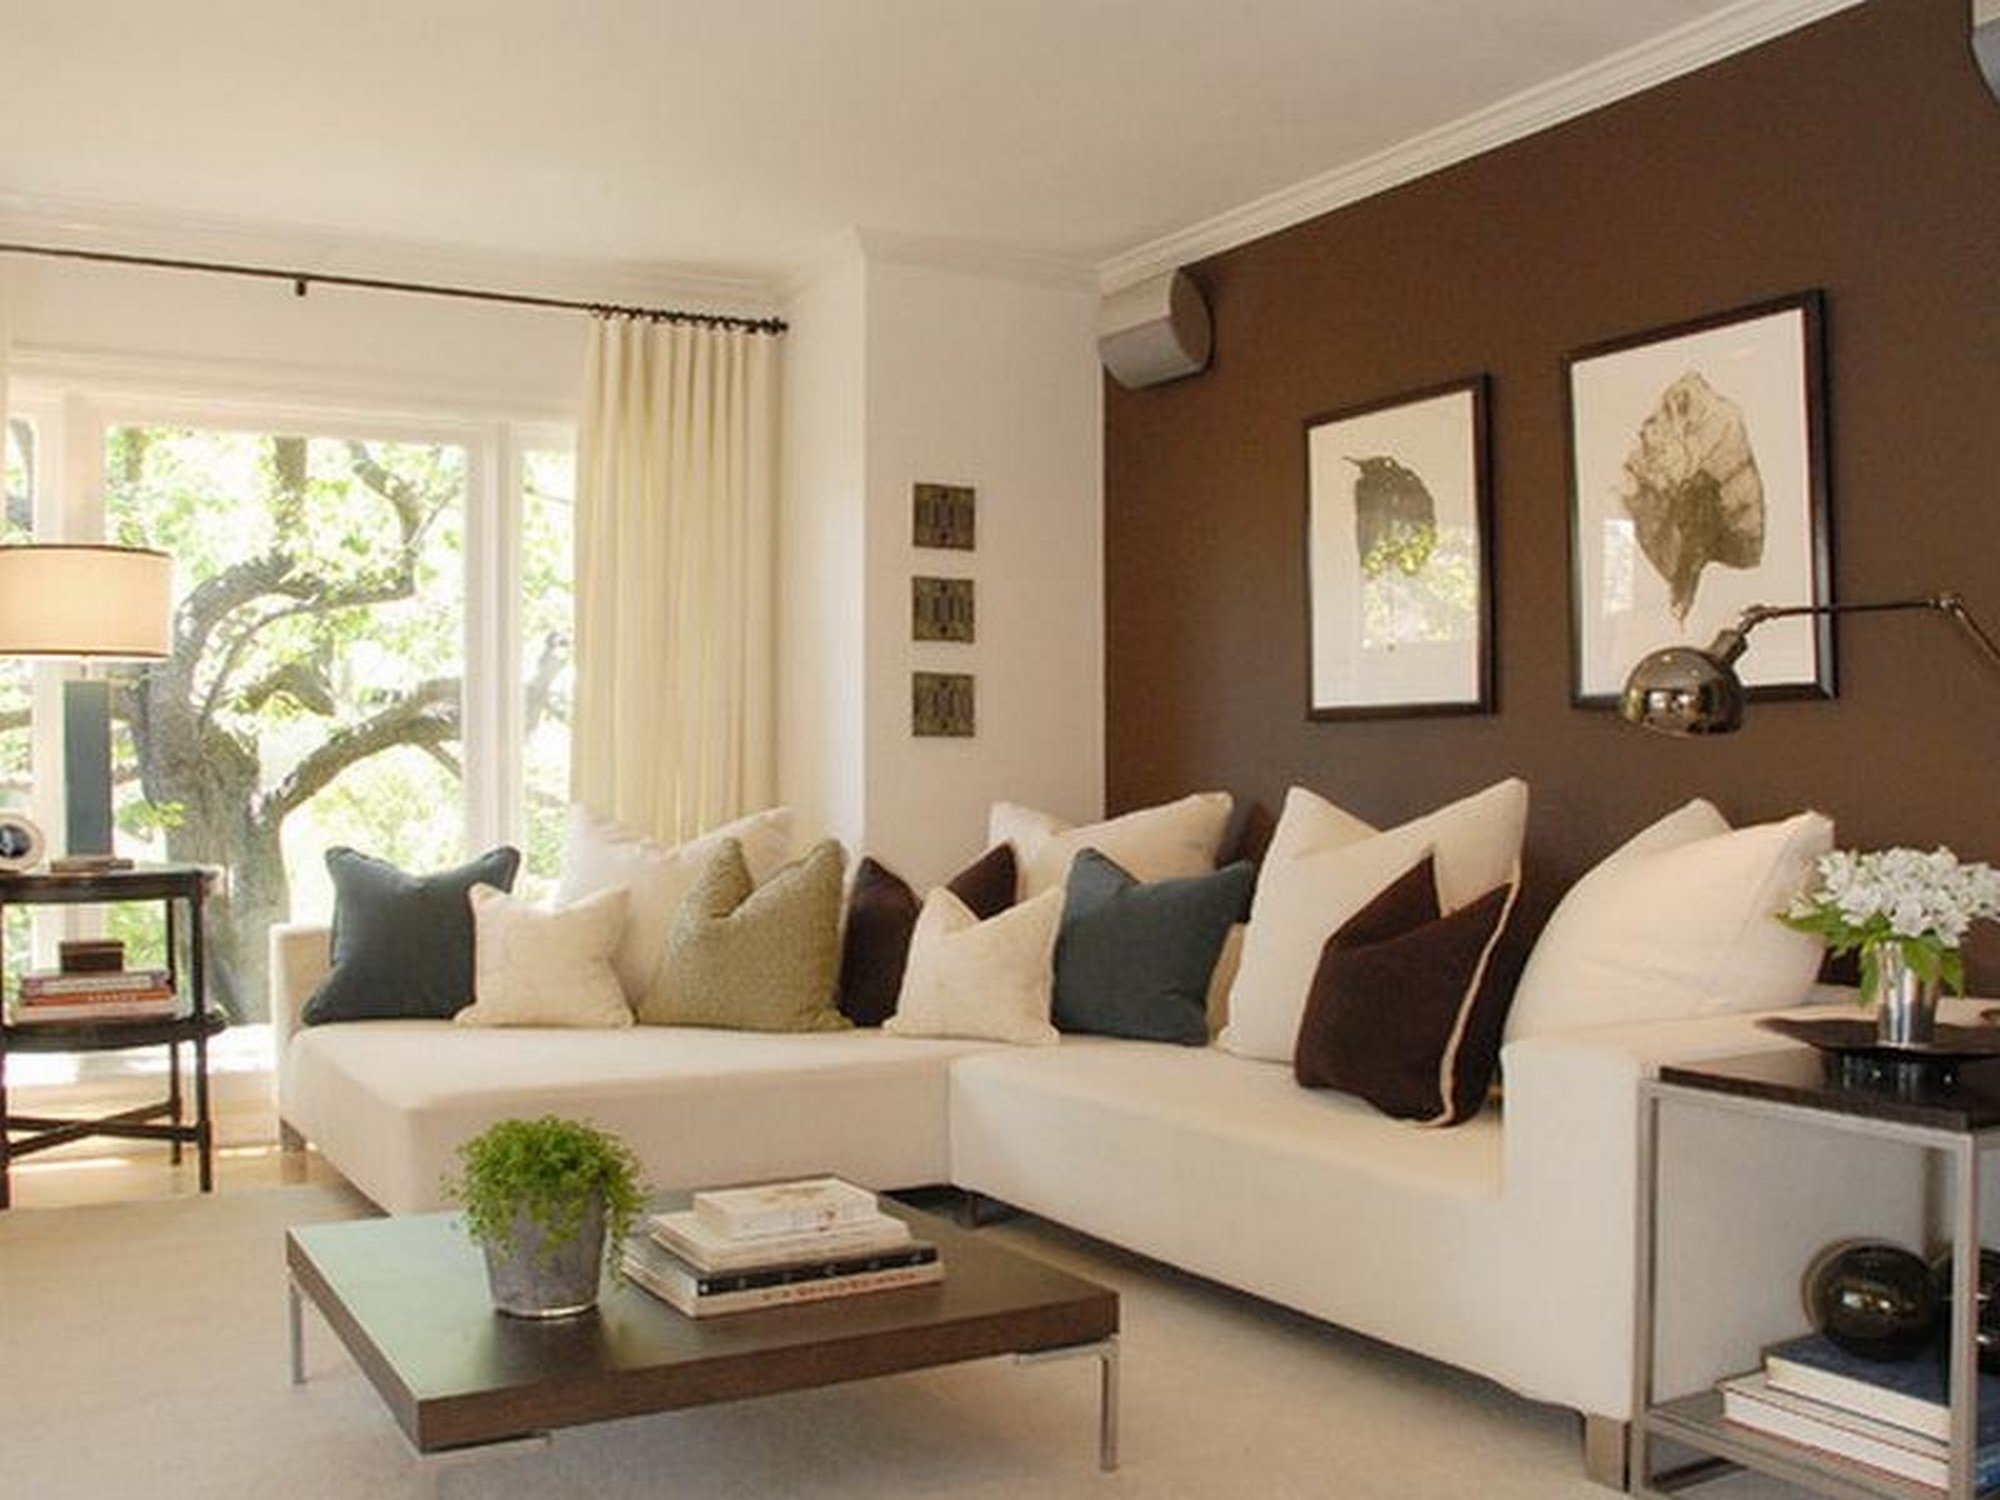 10 Most Popular Living Room Paint Colors Ideas living room paint colors small color ideas schemes wall accent for 2021